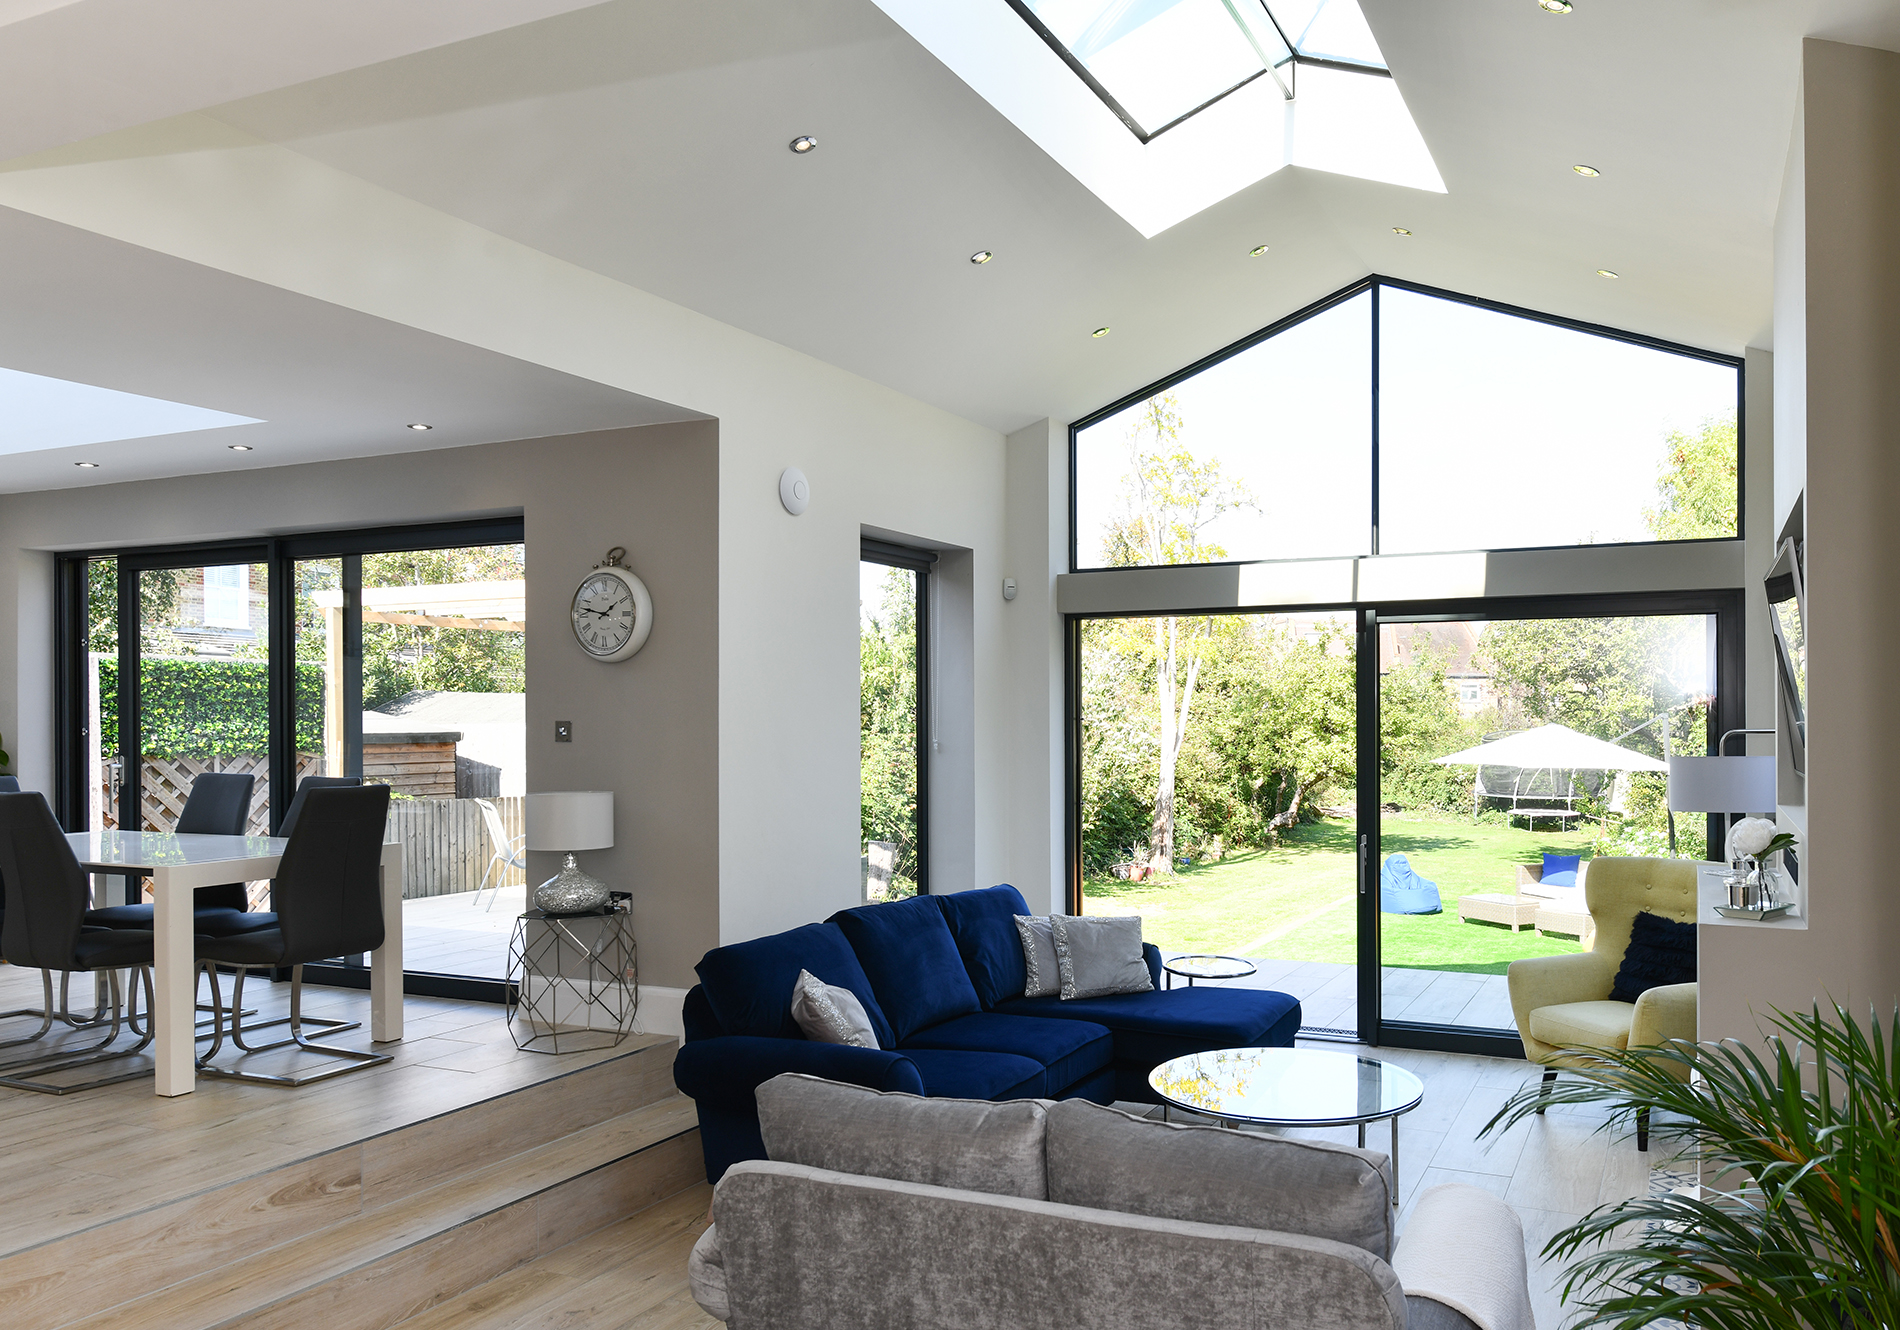 Glazed glable, Glide S Sliding Doors, Aluminium Windows and PUre Glass Roof Lantern featured in New Malden project by Exact Architectural Glazing